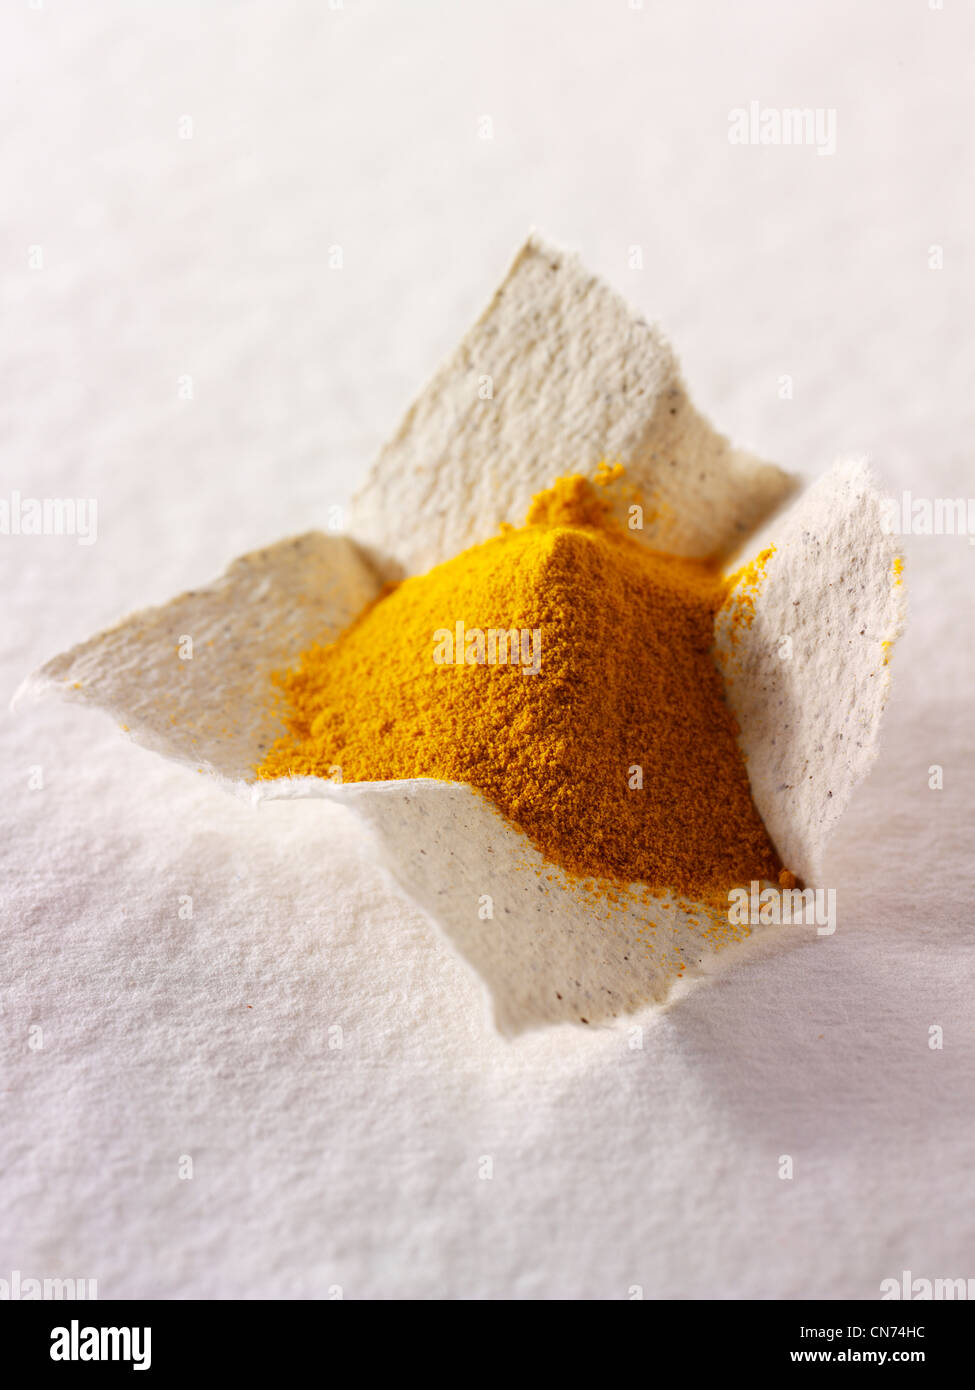 Ground turmeric spice powder - Stock Image